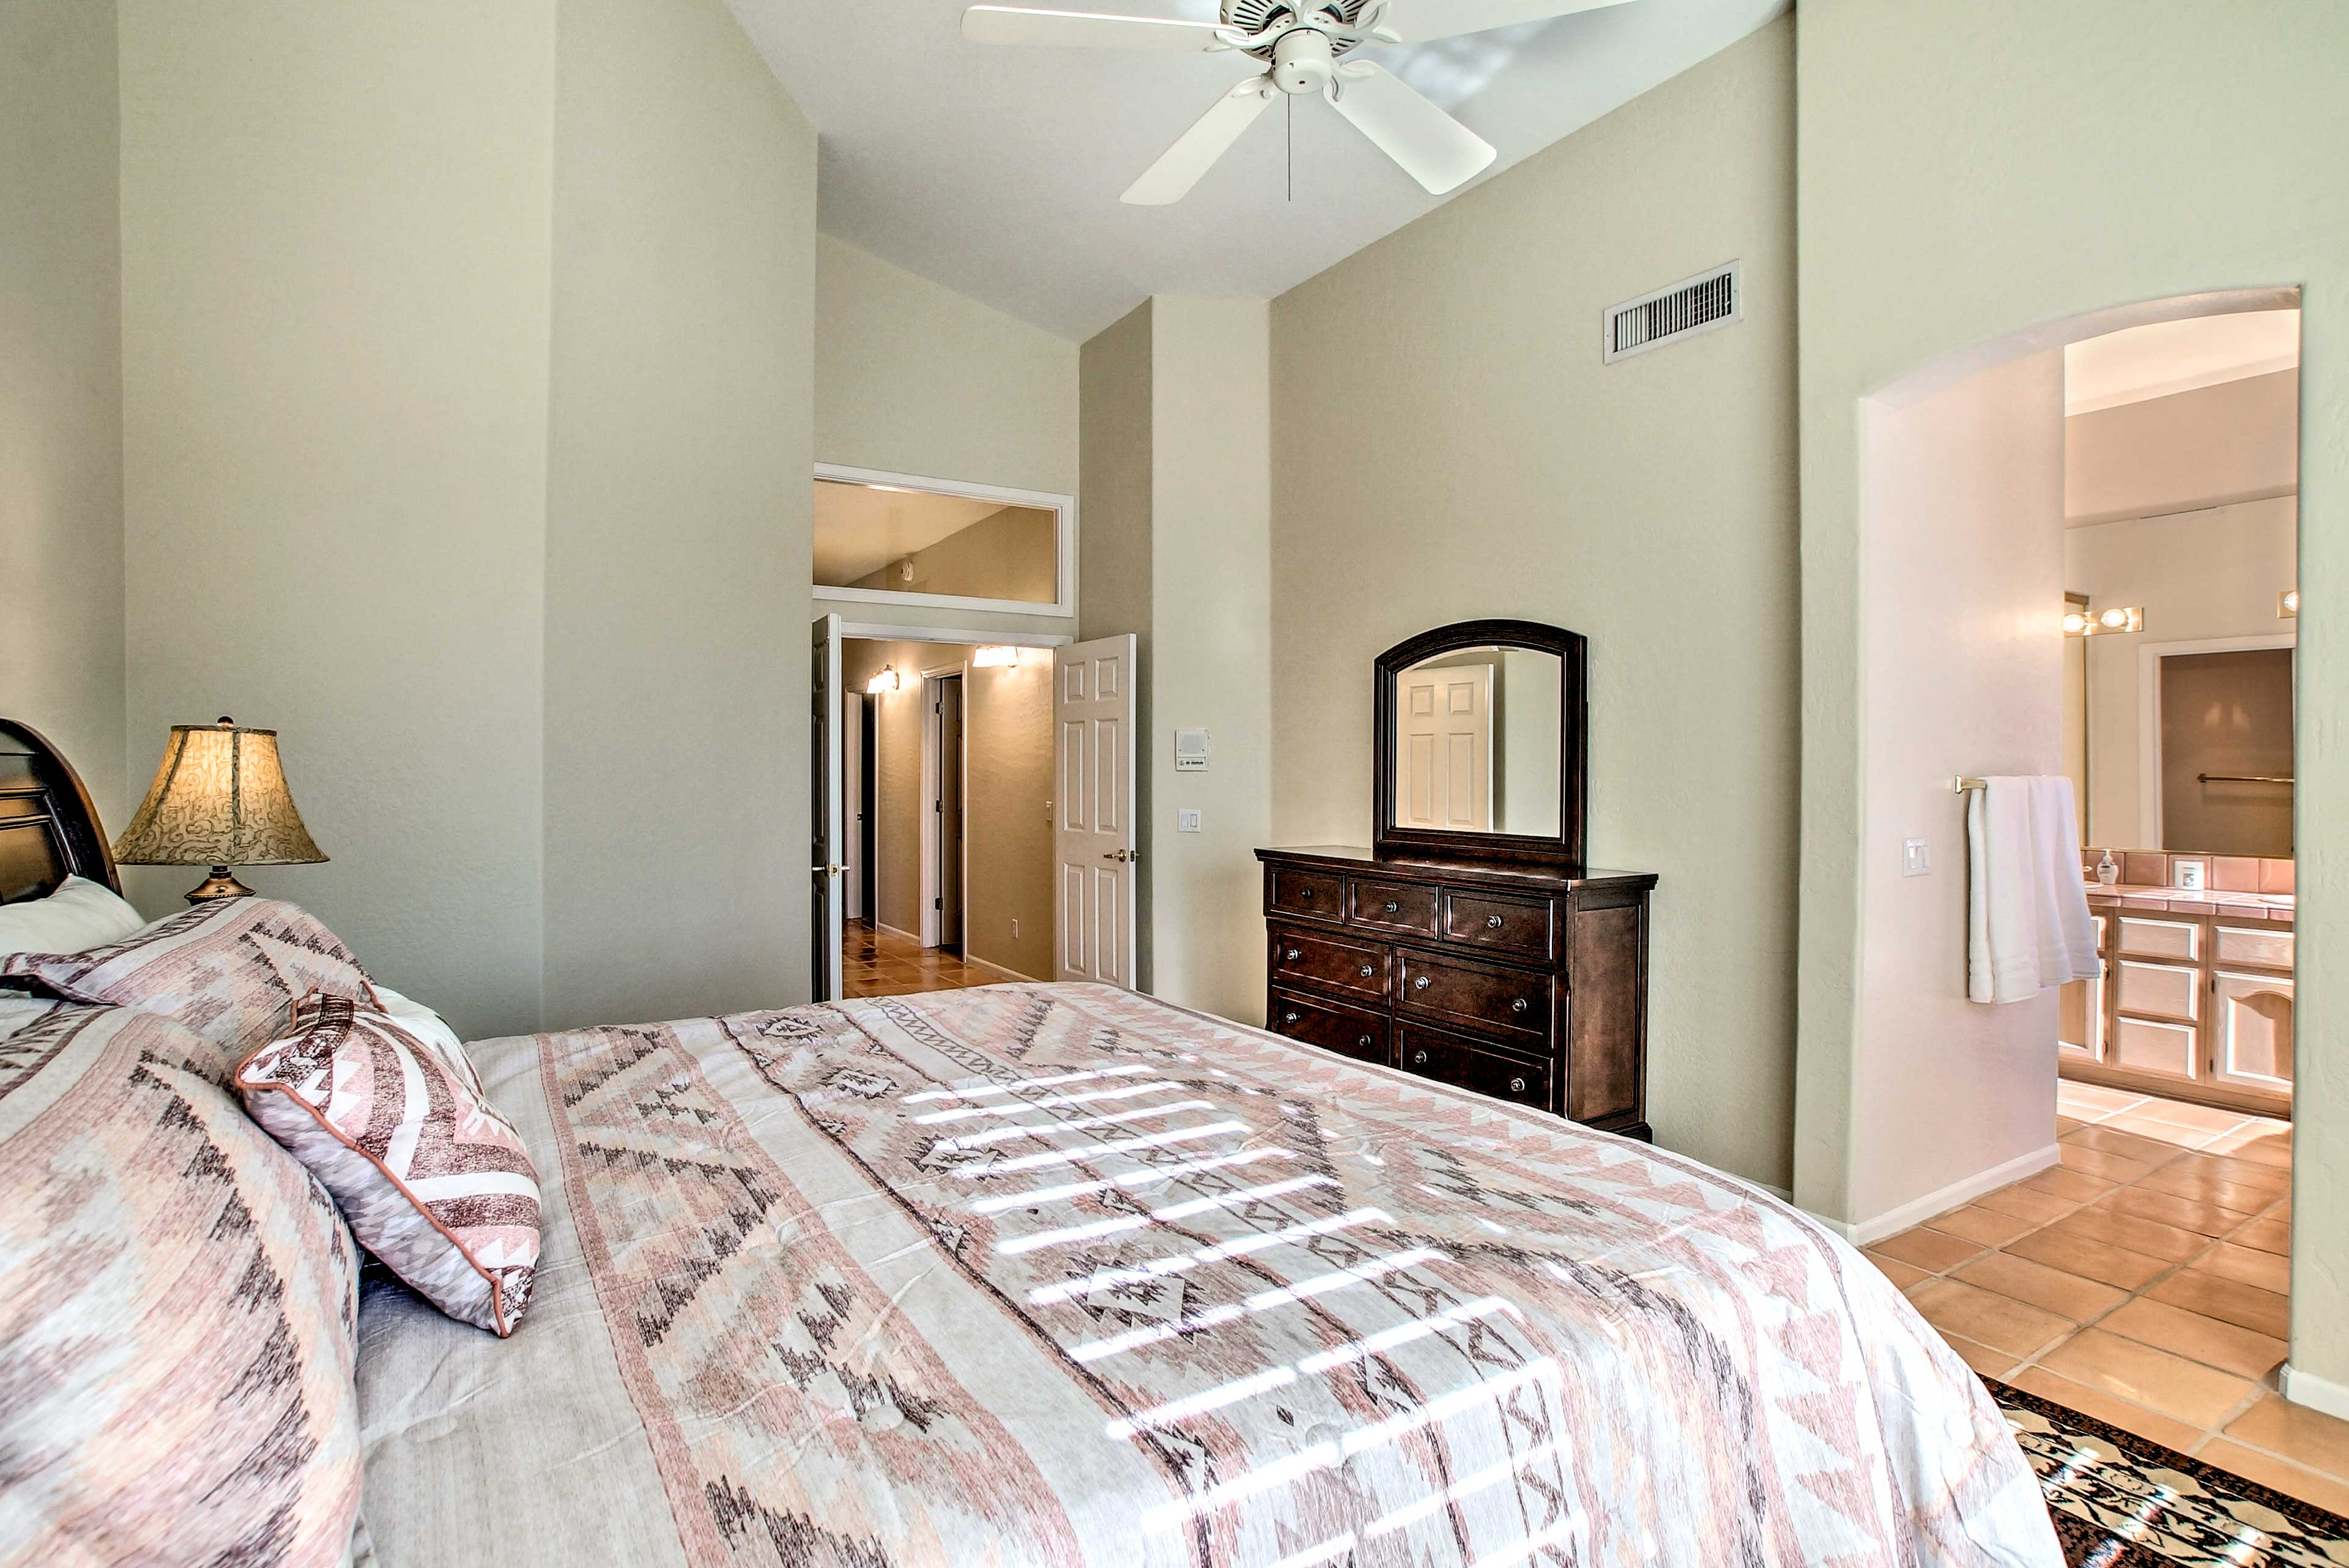 The room offers a private en-suite master bathroom.